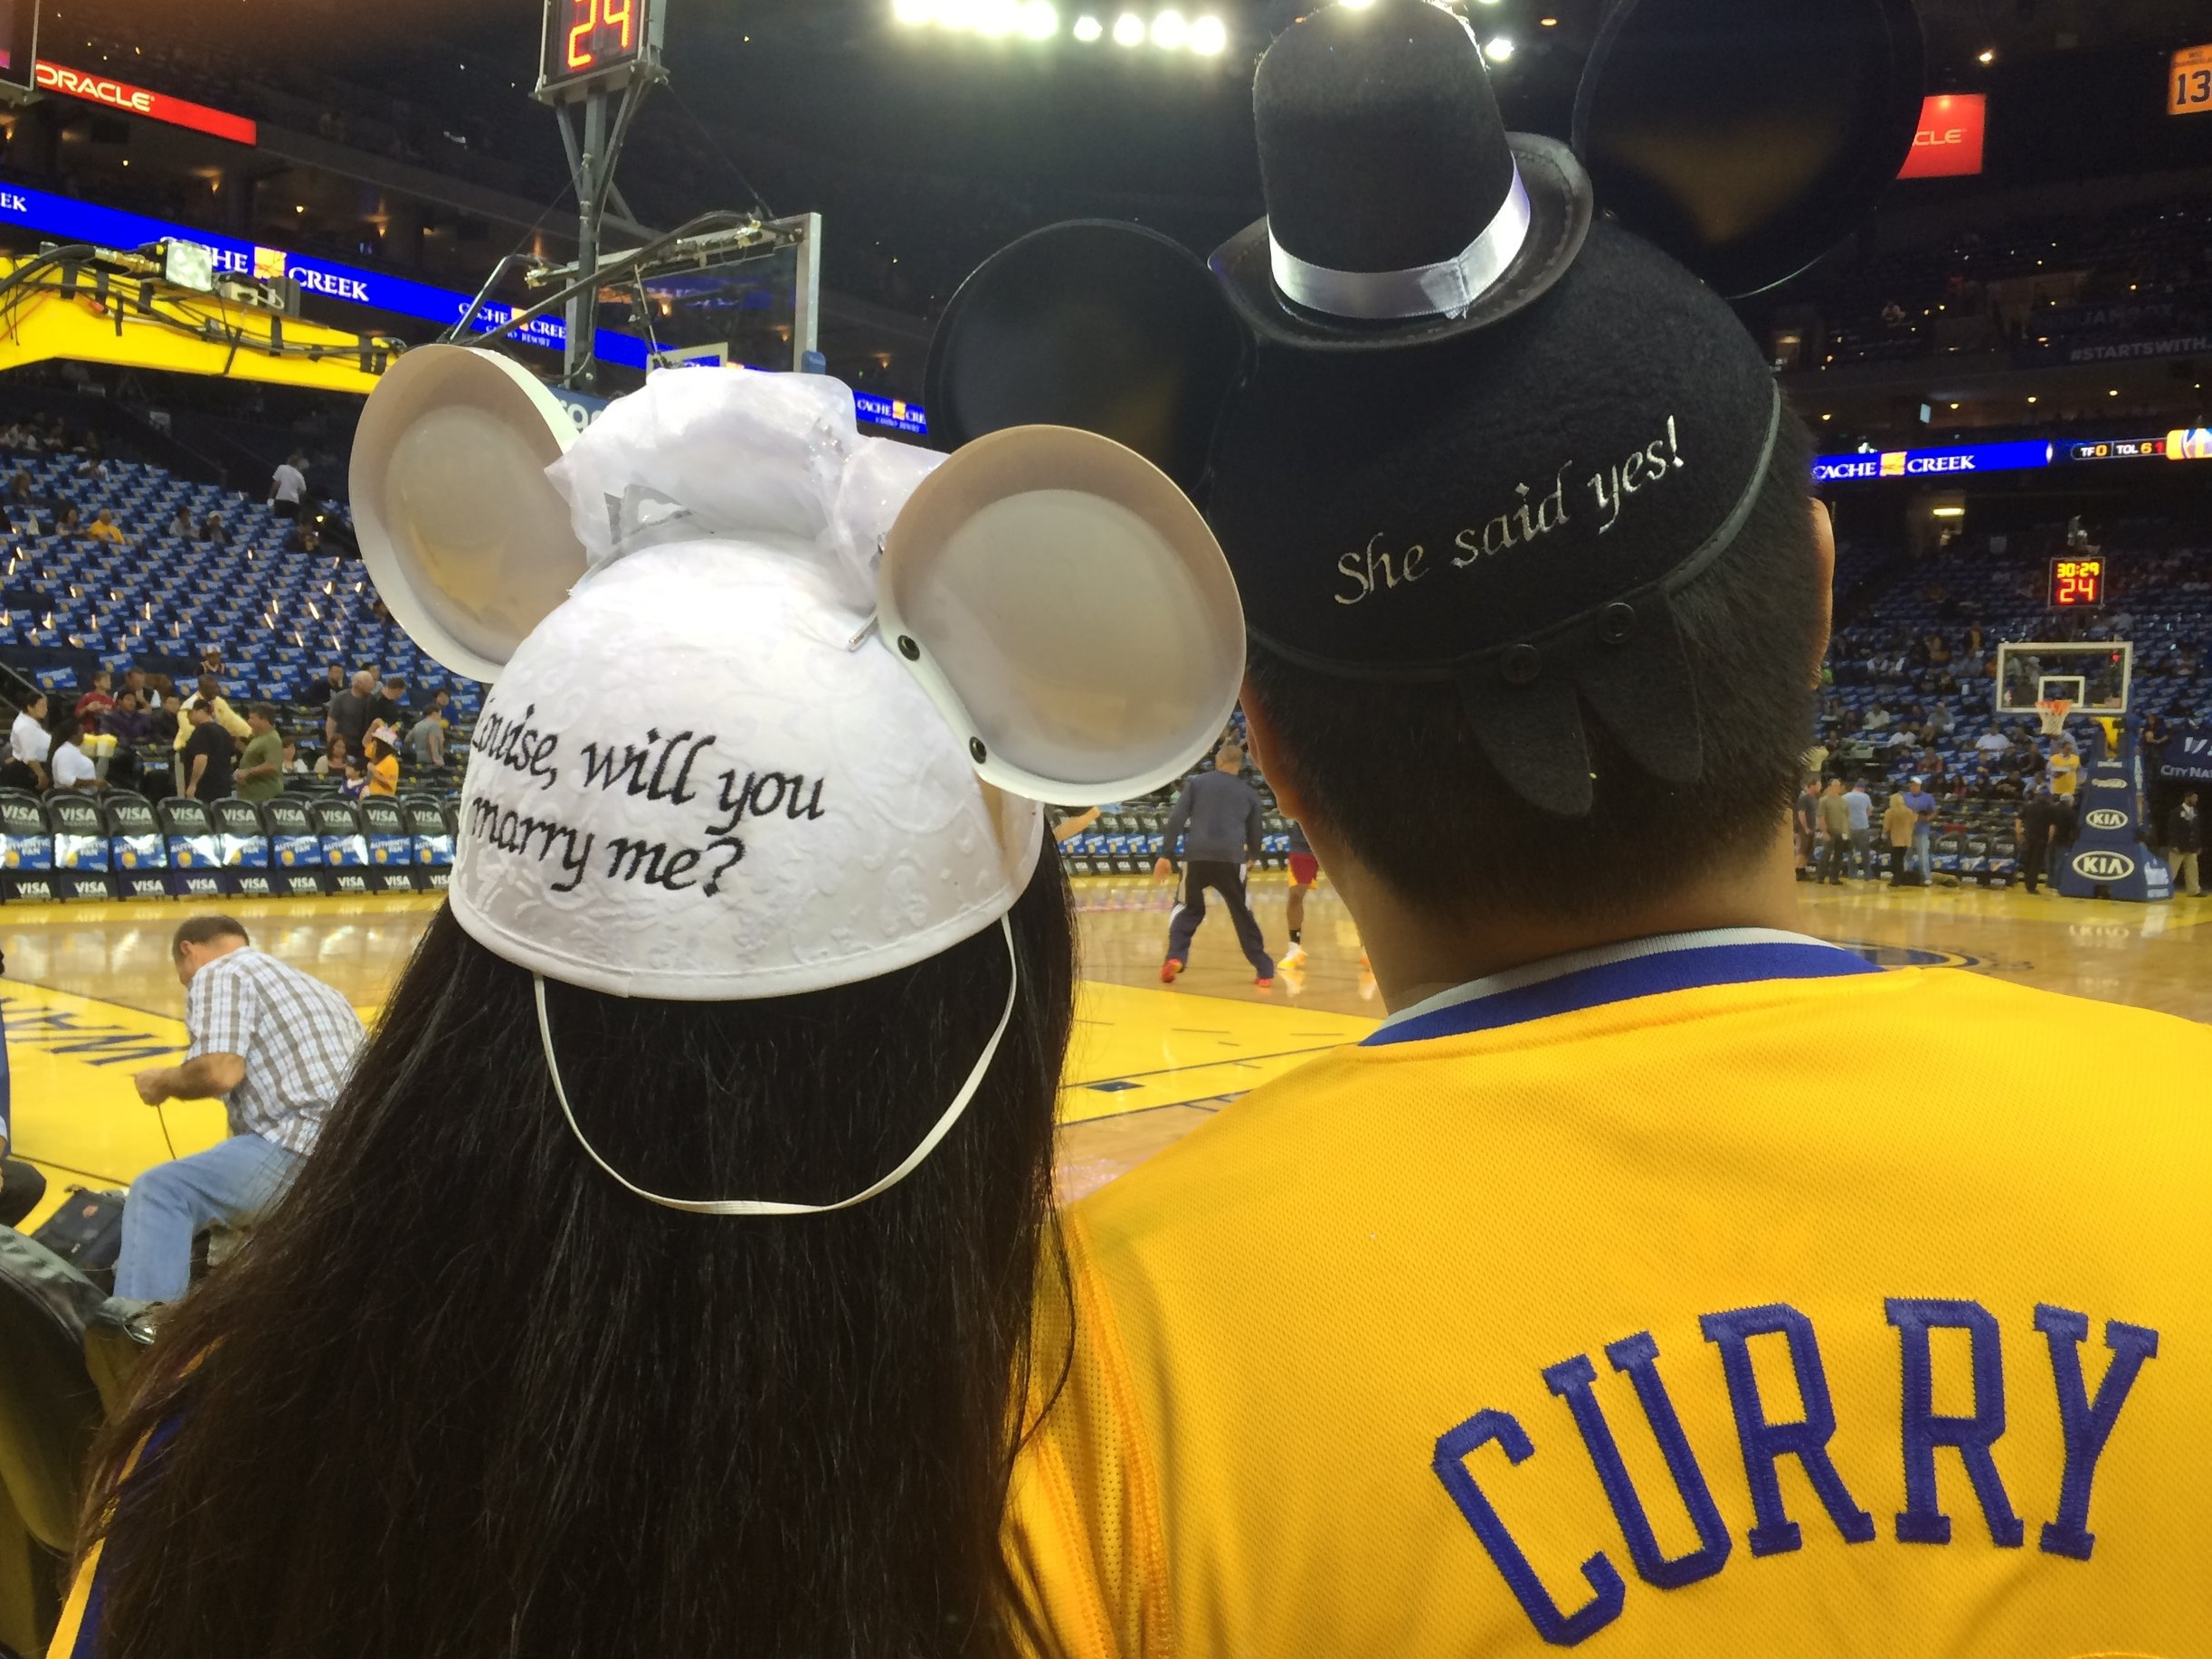 Taken court side after Christian proposed (2014).